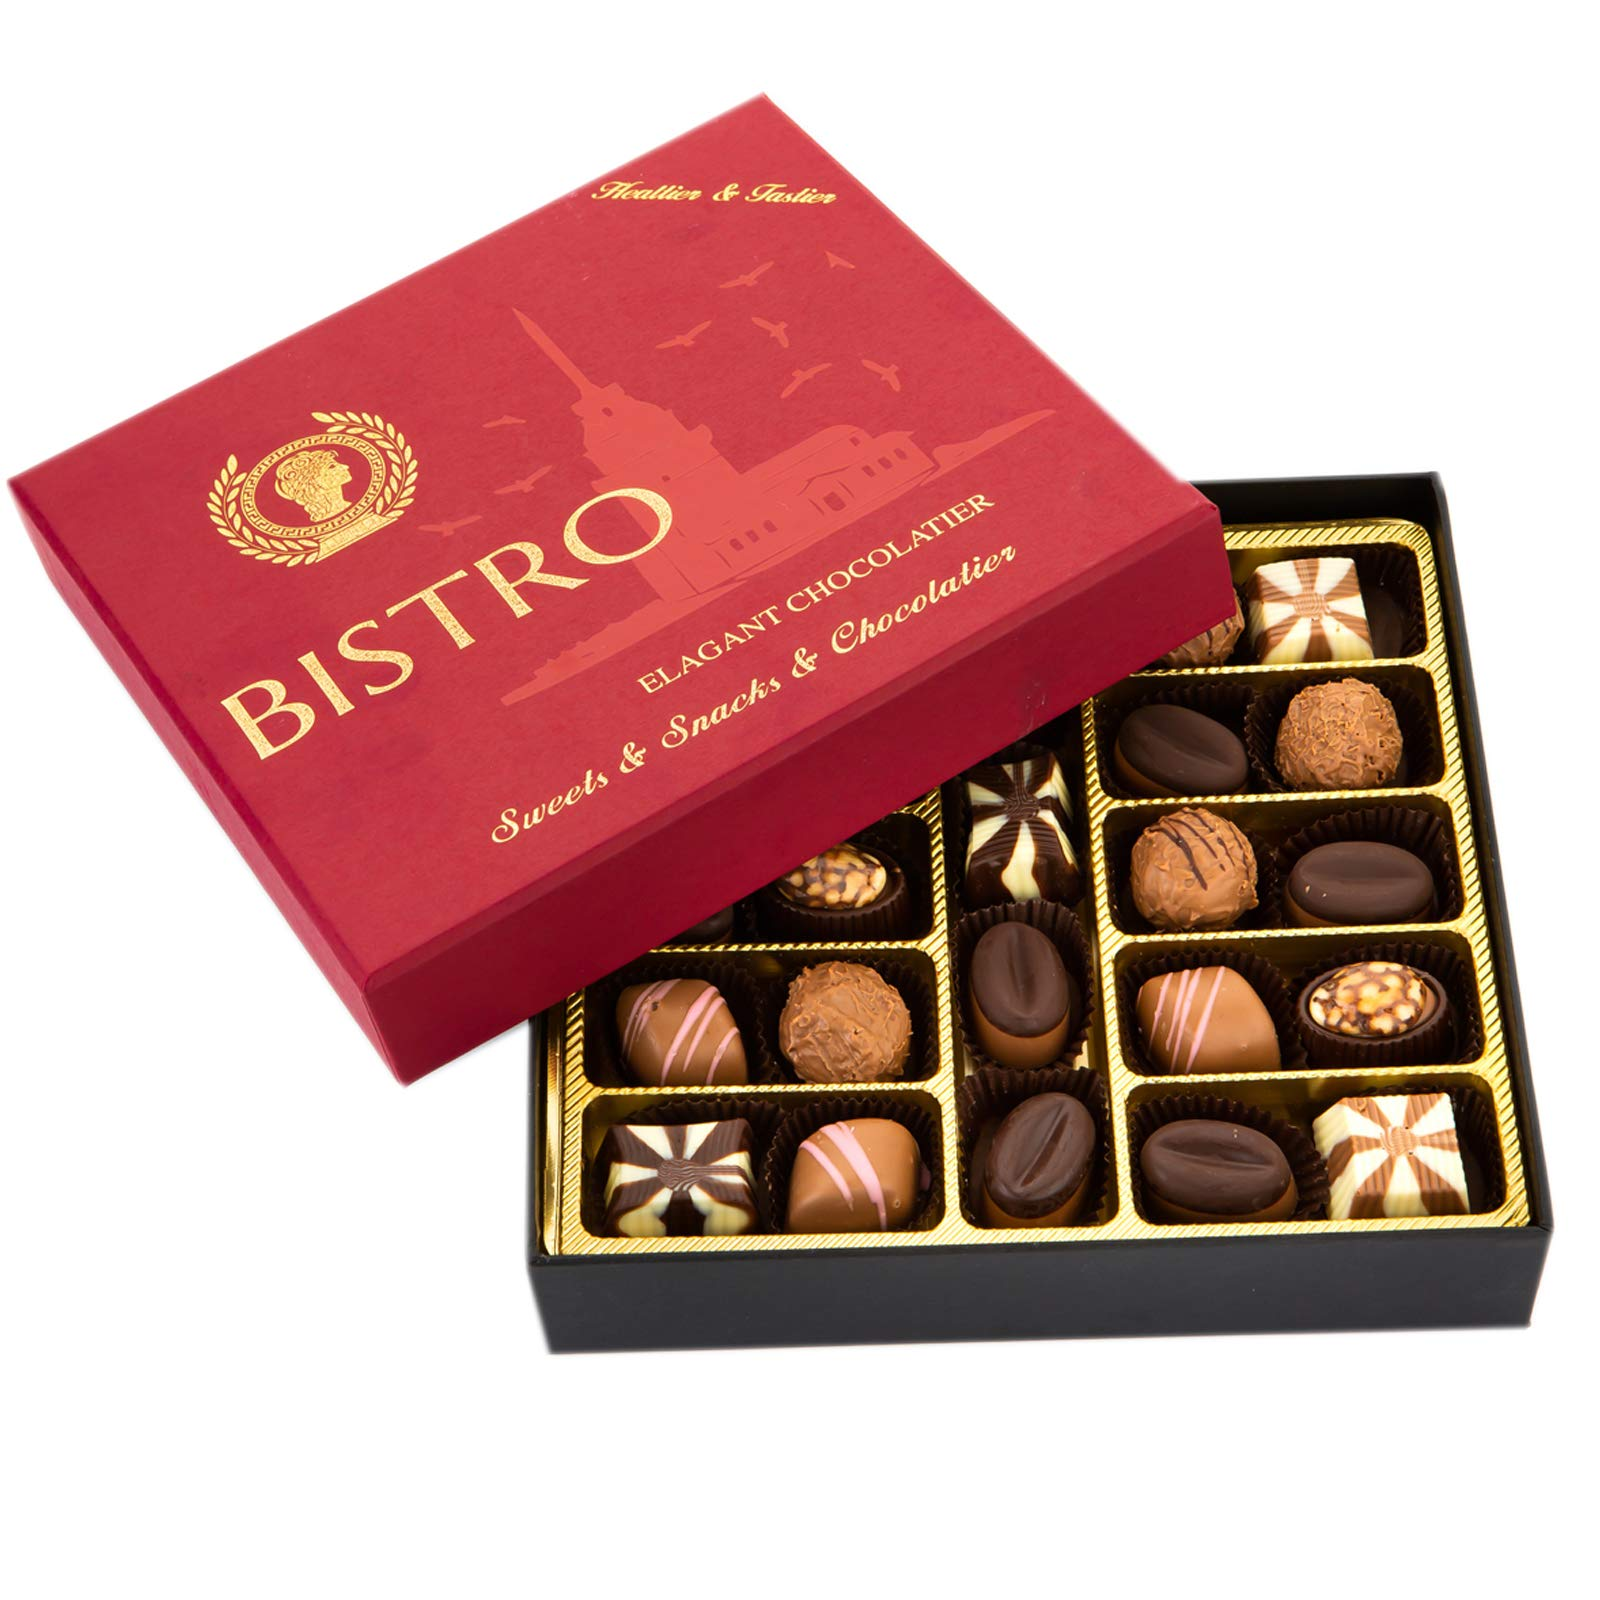 CDM product Bistro Chocolate Boxed Luxury Selection, Premium Assorted Gift Box, Gourmet Truffles,Natural and Healthy big image